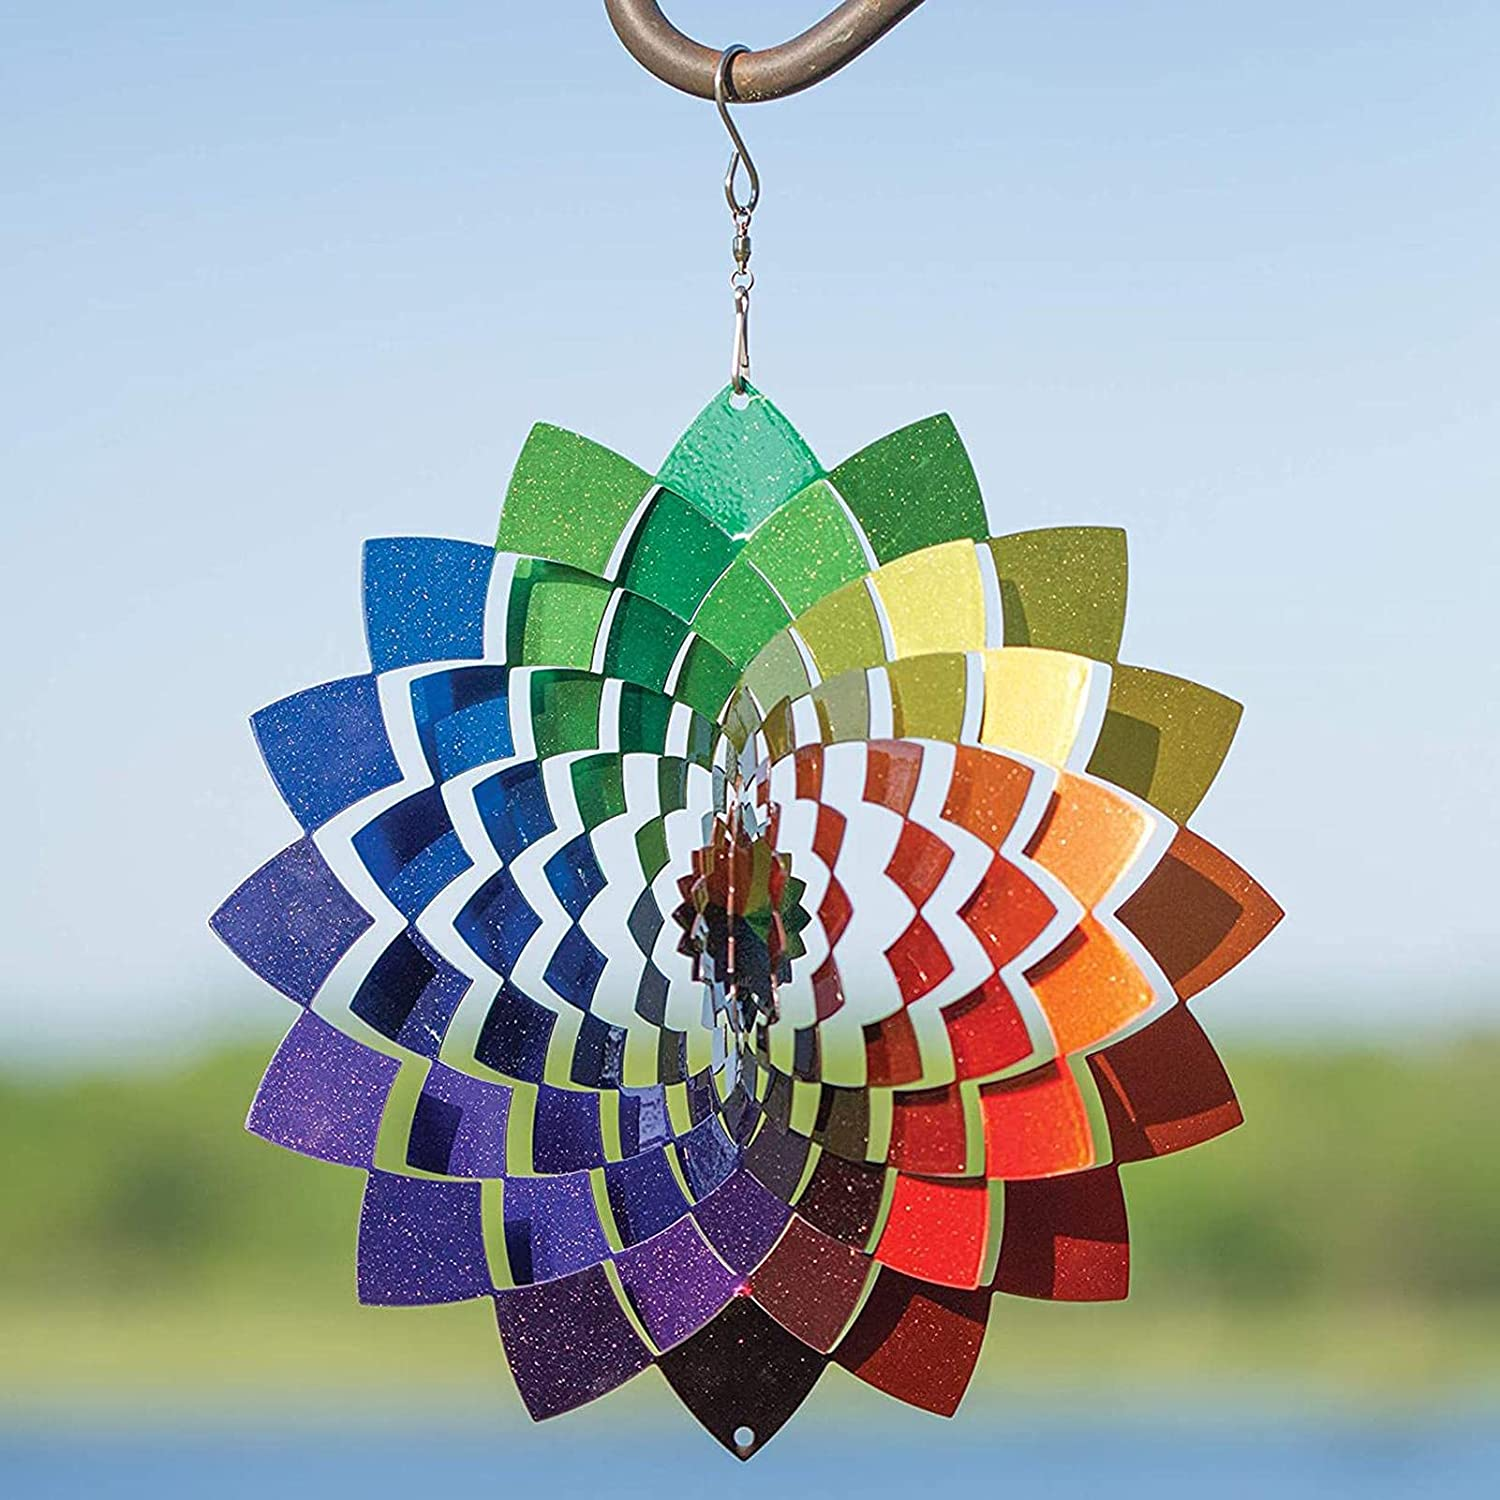 Wind store Spinner 3D Colorful Geometric Catcher Flower Max 51% OFF Metal Win